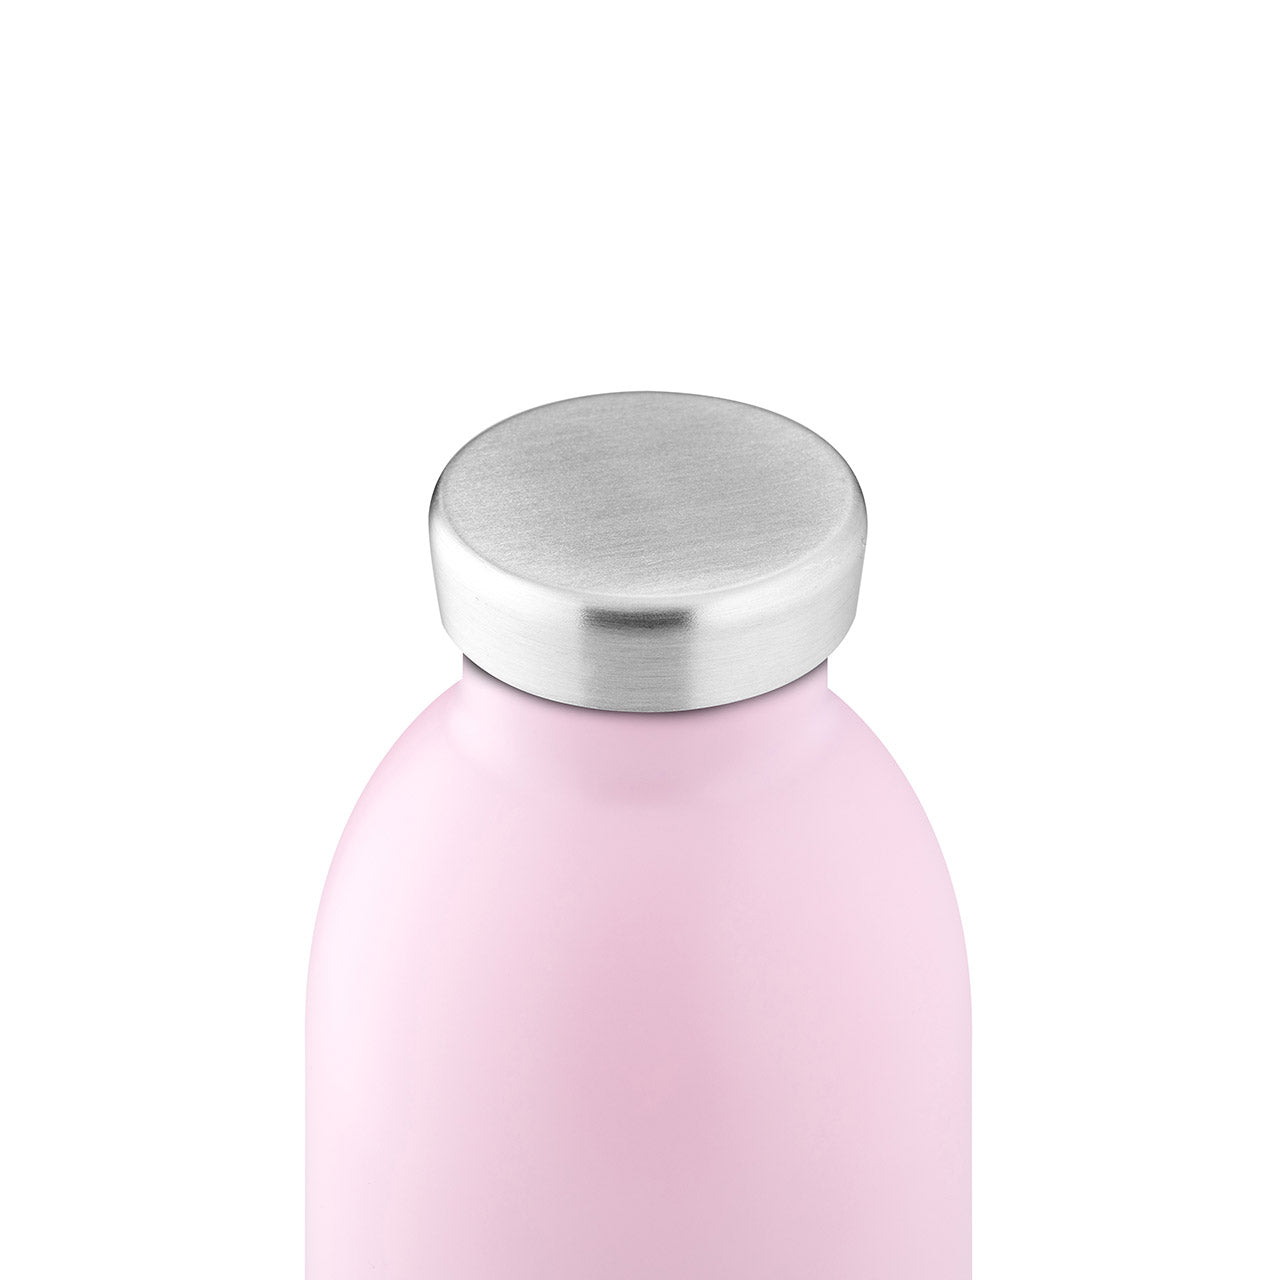 24Bottles - Pastel Collection - Clima Bottle - Stainless Steel Drink Bottle - 500ml - Candy Pink